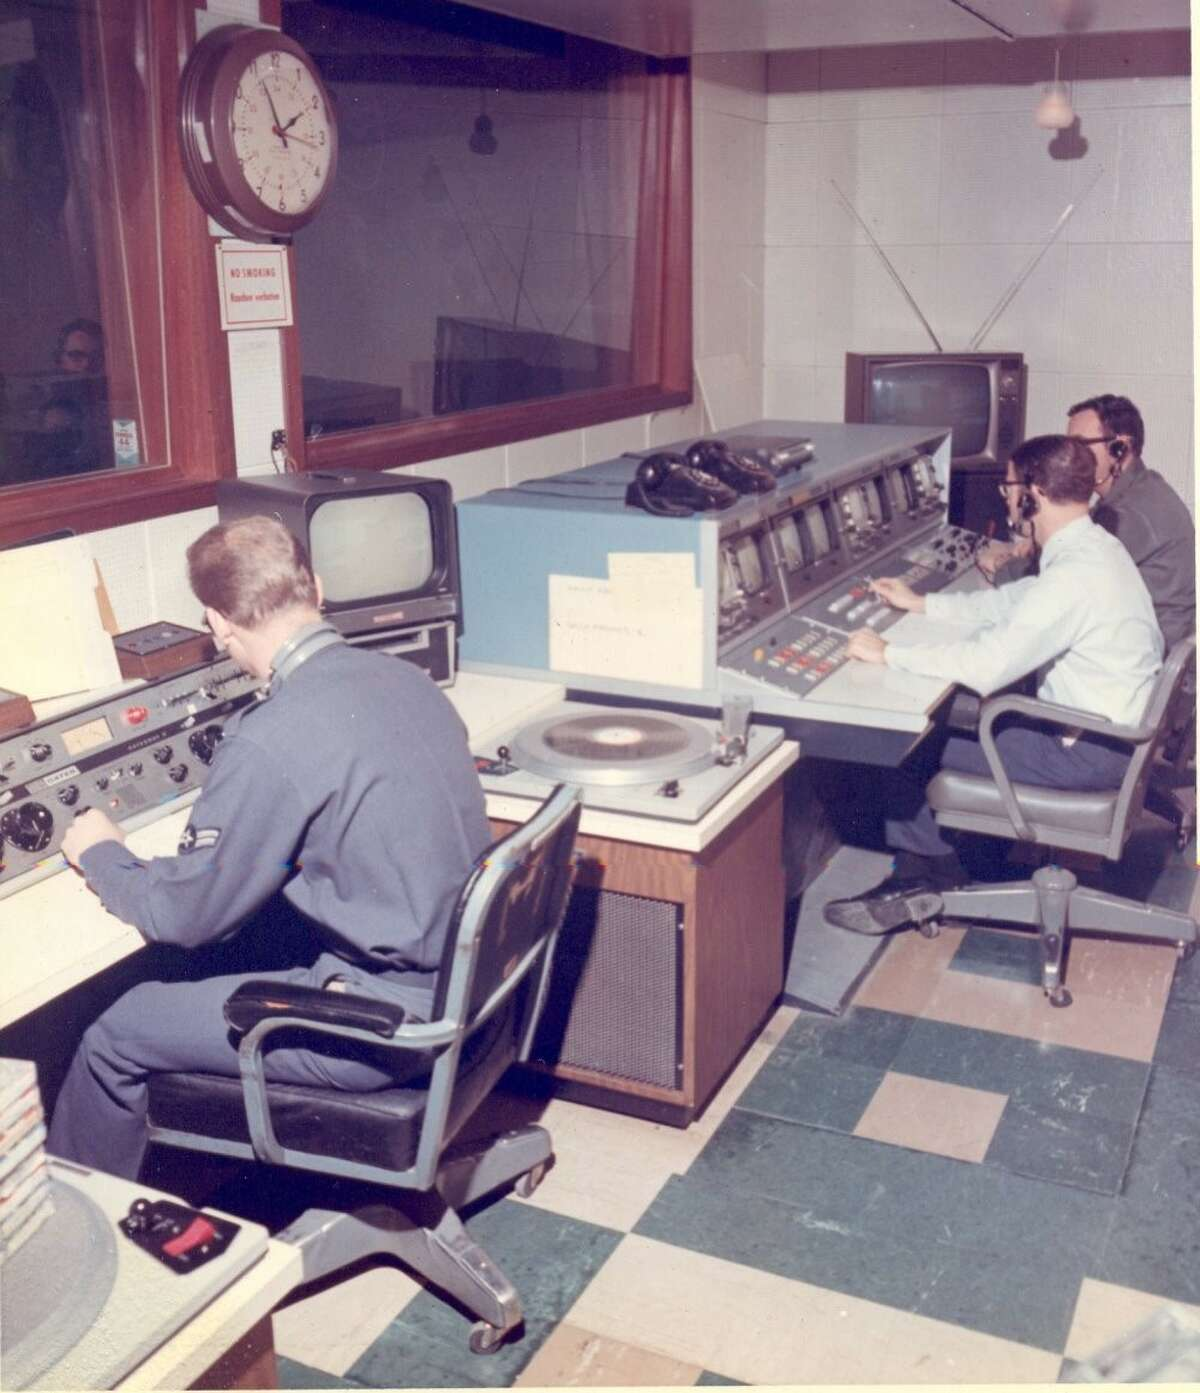 Tom Disinger of Clifton Park was a 21-year-old member of the U.S. Air Force stationed at Ramstein Air Base in Germany. Here's the control room where he worked when Apollo 11 landed on the moon in July 1969. He was working at the American Forces TV station. He's seen at the far right. (Courtesy Tom Disinger)